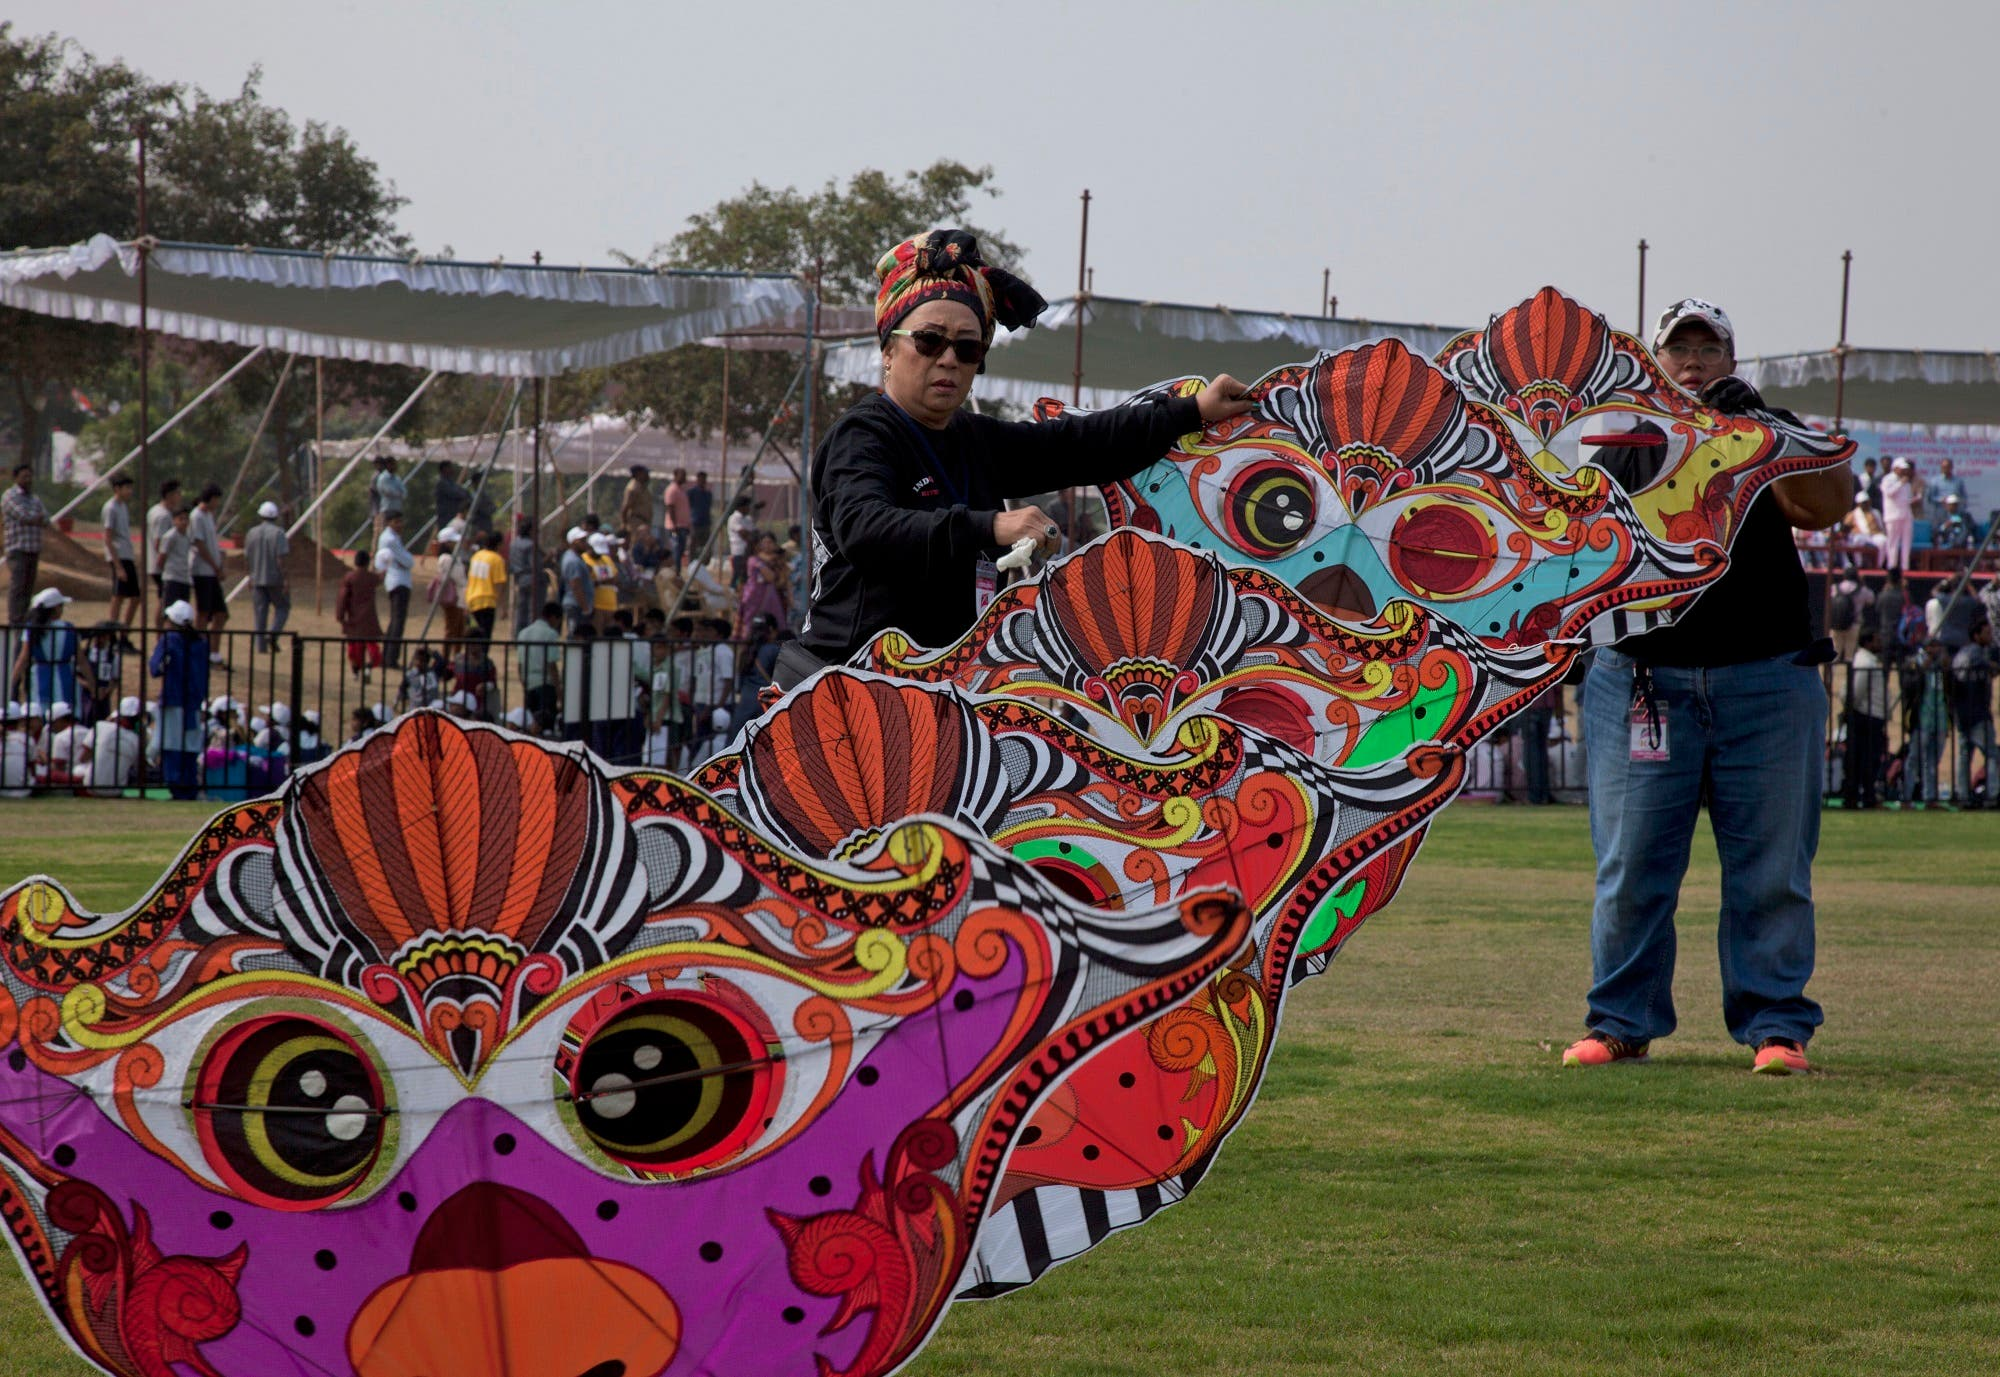 Participants fly a giant kite during the International Kite Festival on the outskirts of Hyderabad, India, on Jan. 13, 2017. (AP)